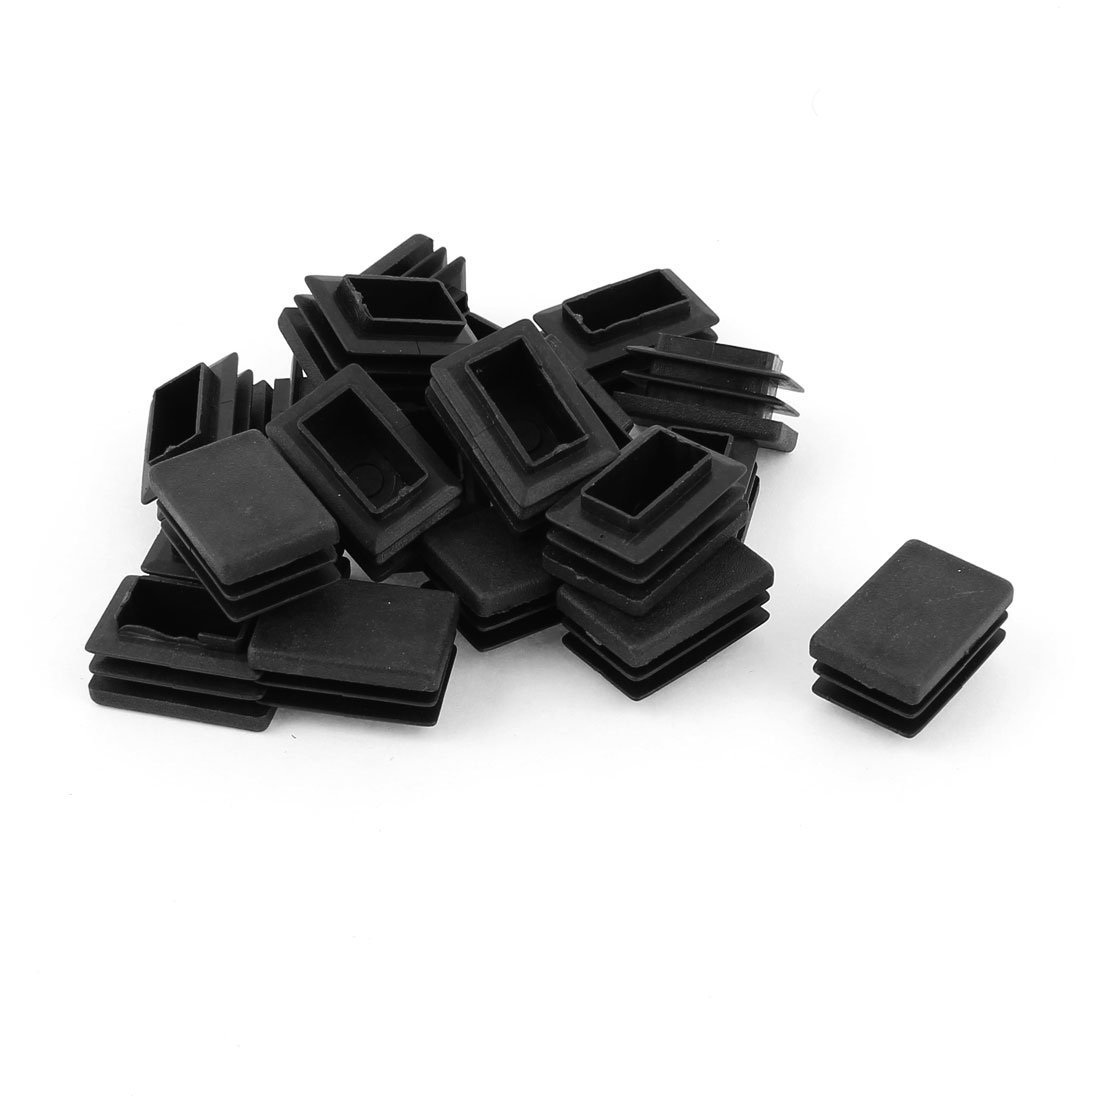 Hot Sale 20 Pcs Plastic Rectangular End Cap 30mm X 20mm Threaded Pipe Tube Insert Rubber Feet